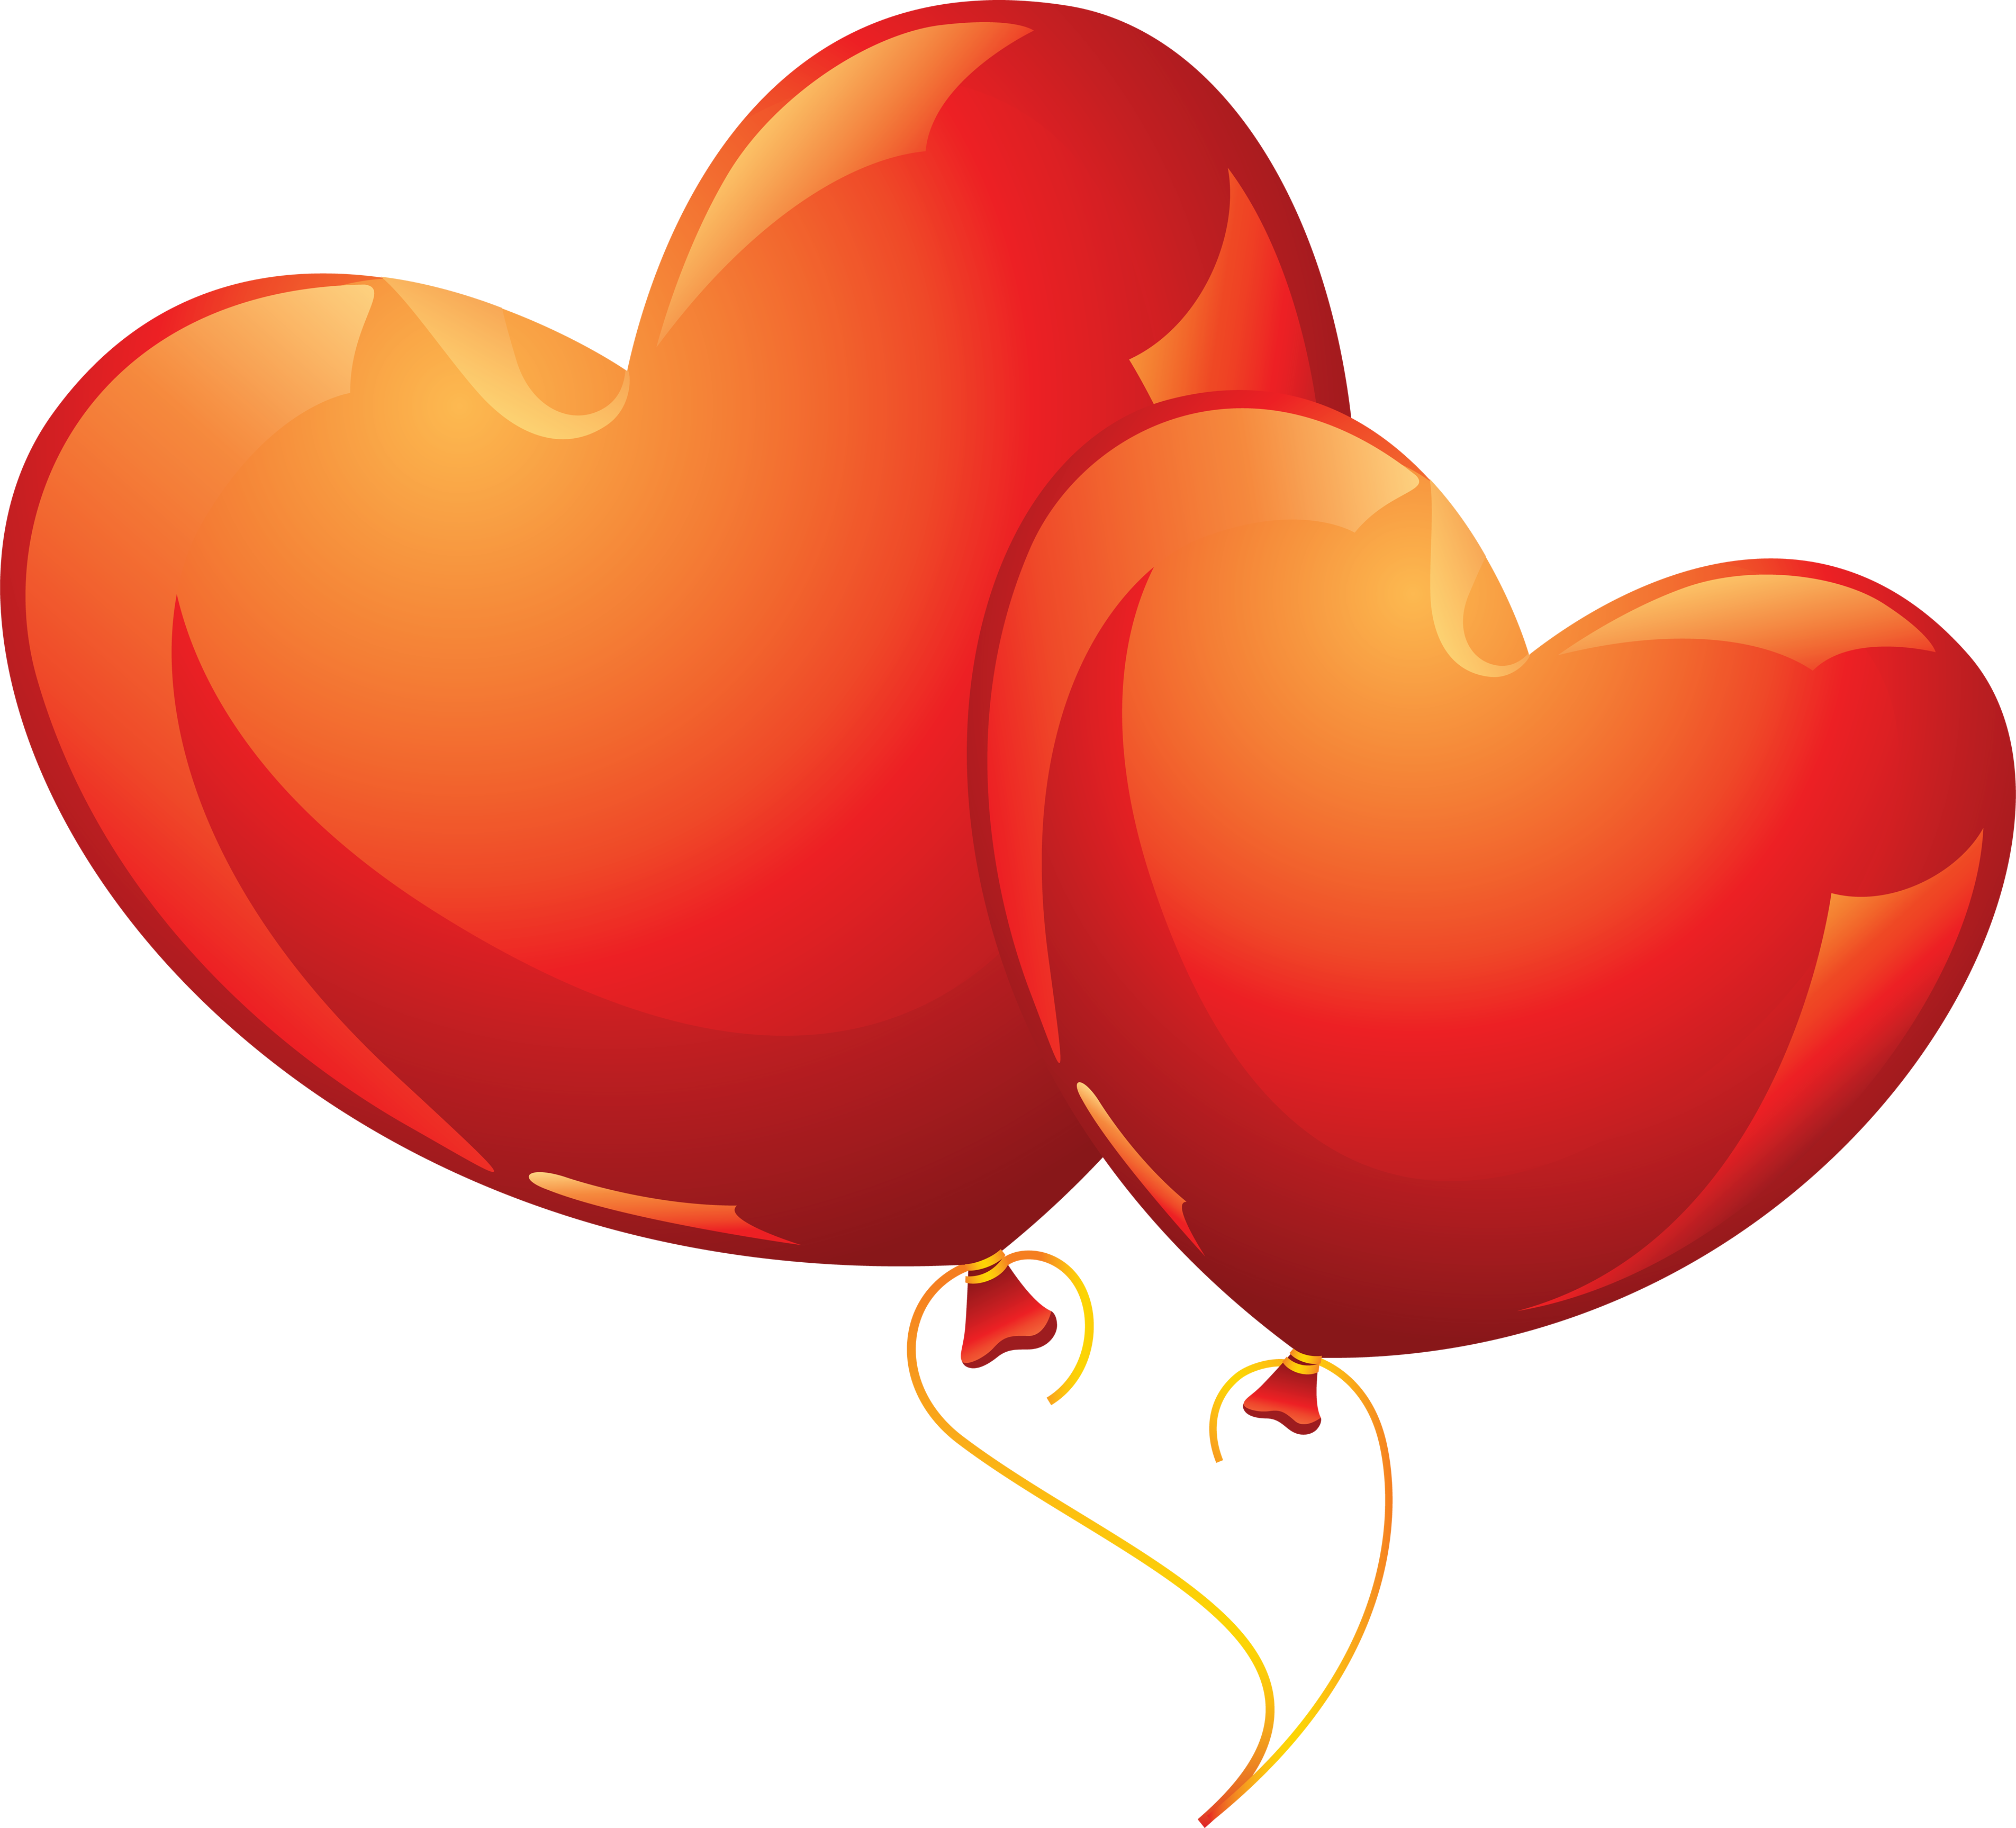 Heart PNG image, free download image with transparent